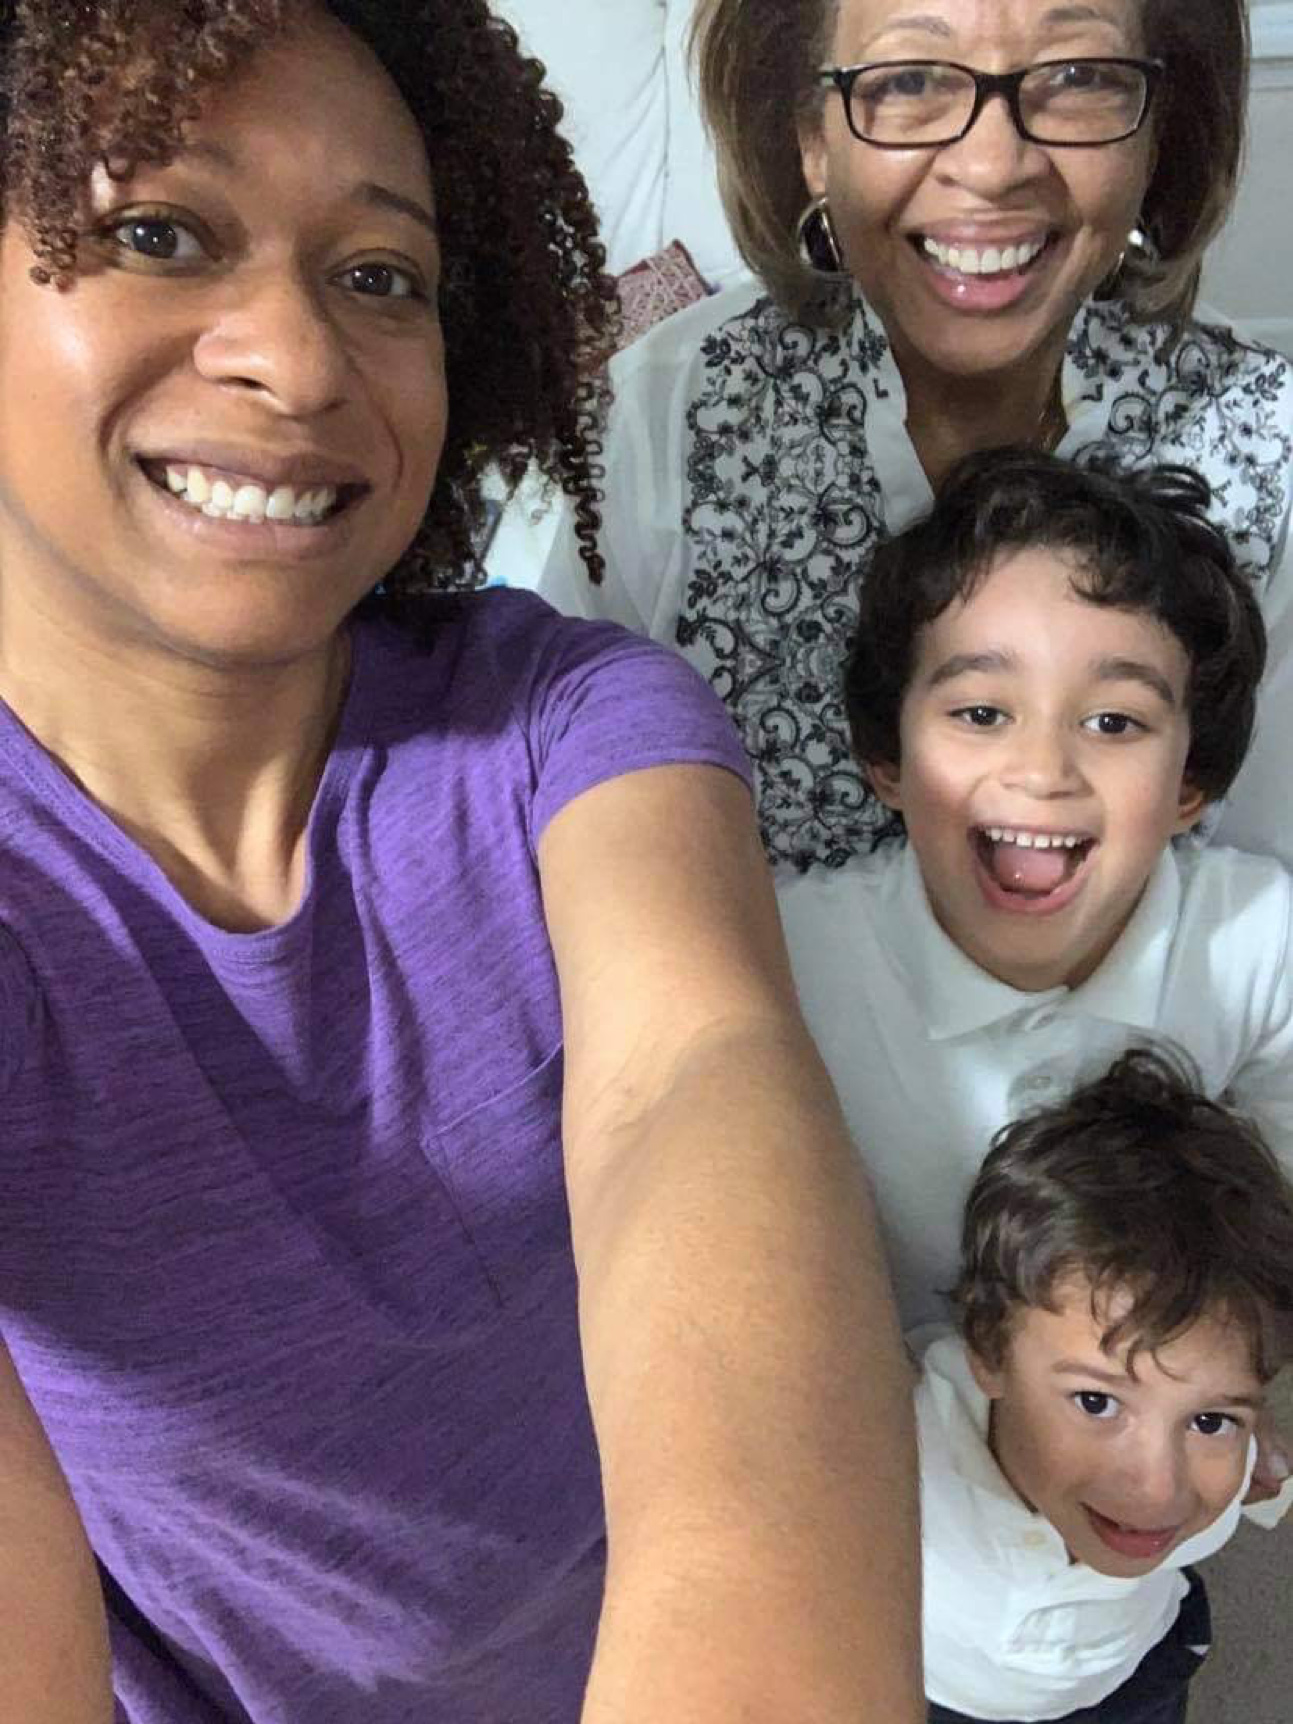 Jennifer Shelton with her daughter and grandkids